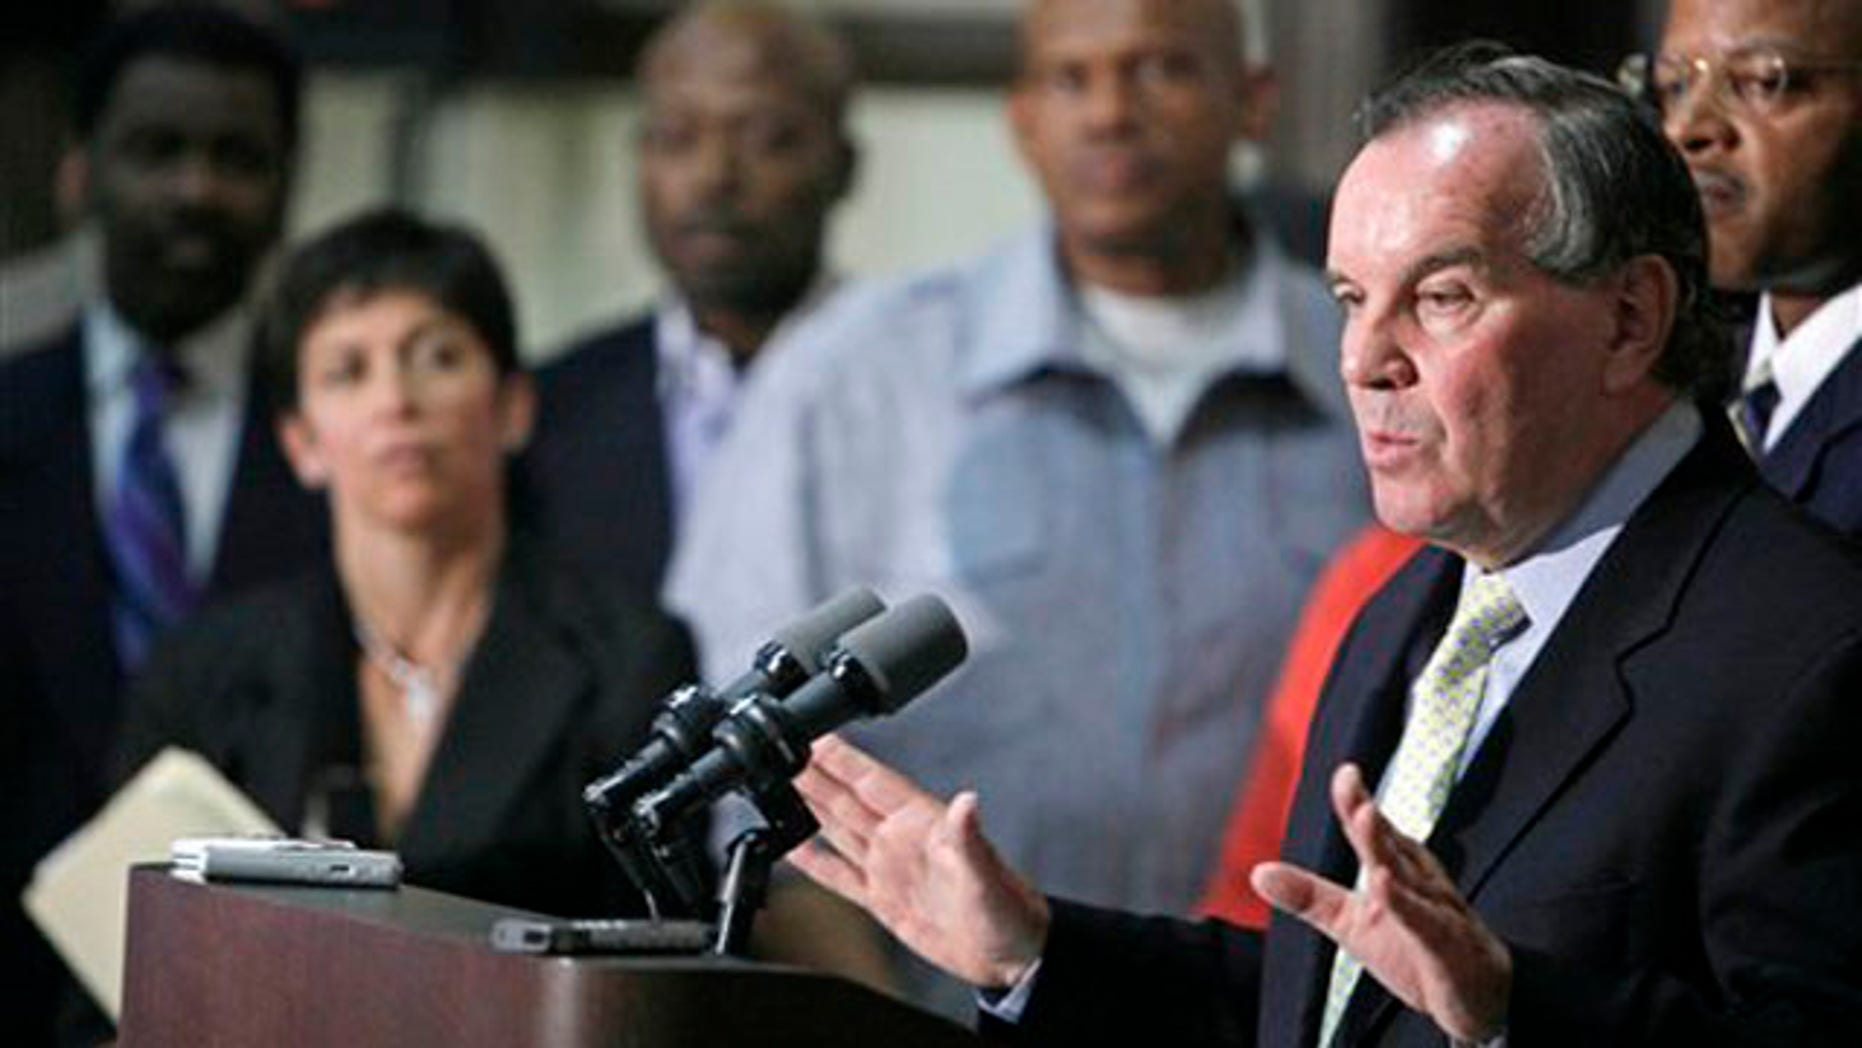 Chicago Mayor Richard Daley speaks during a news conference July 1 in Chicago. (AP Photo)